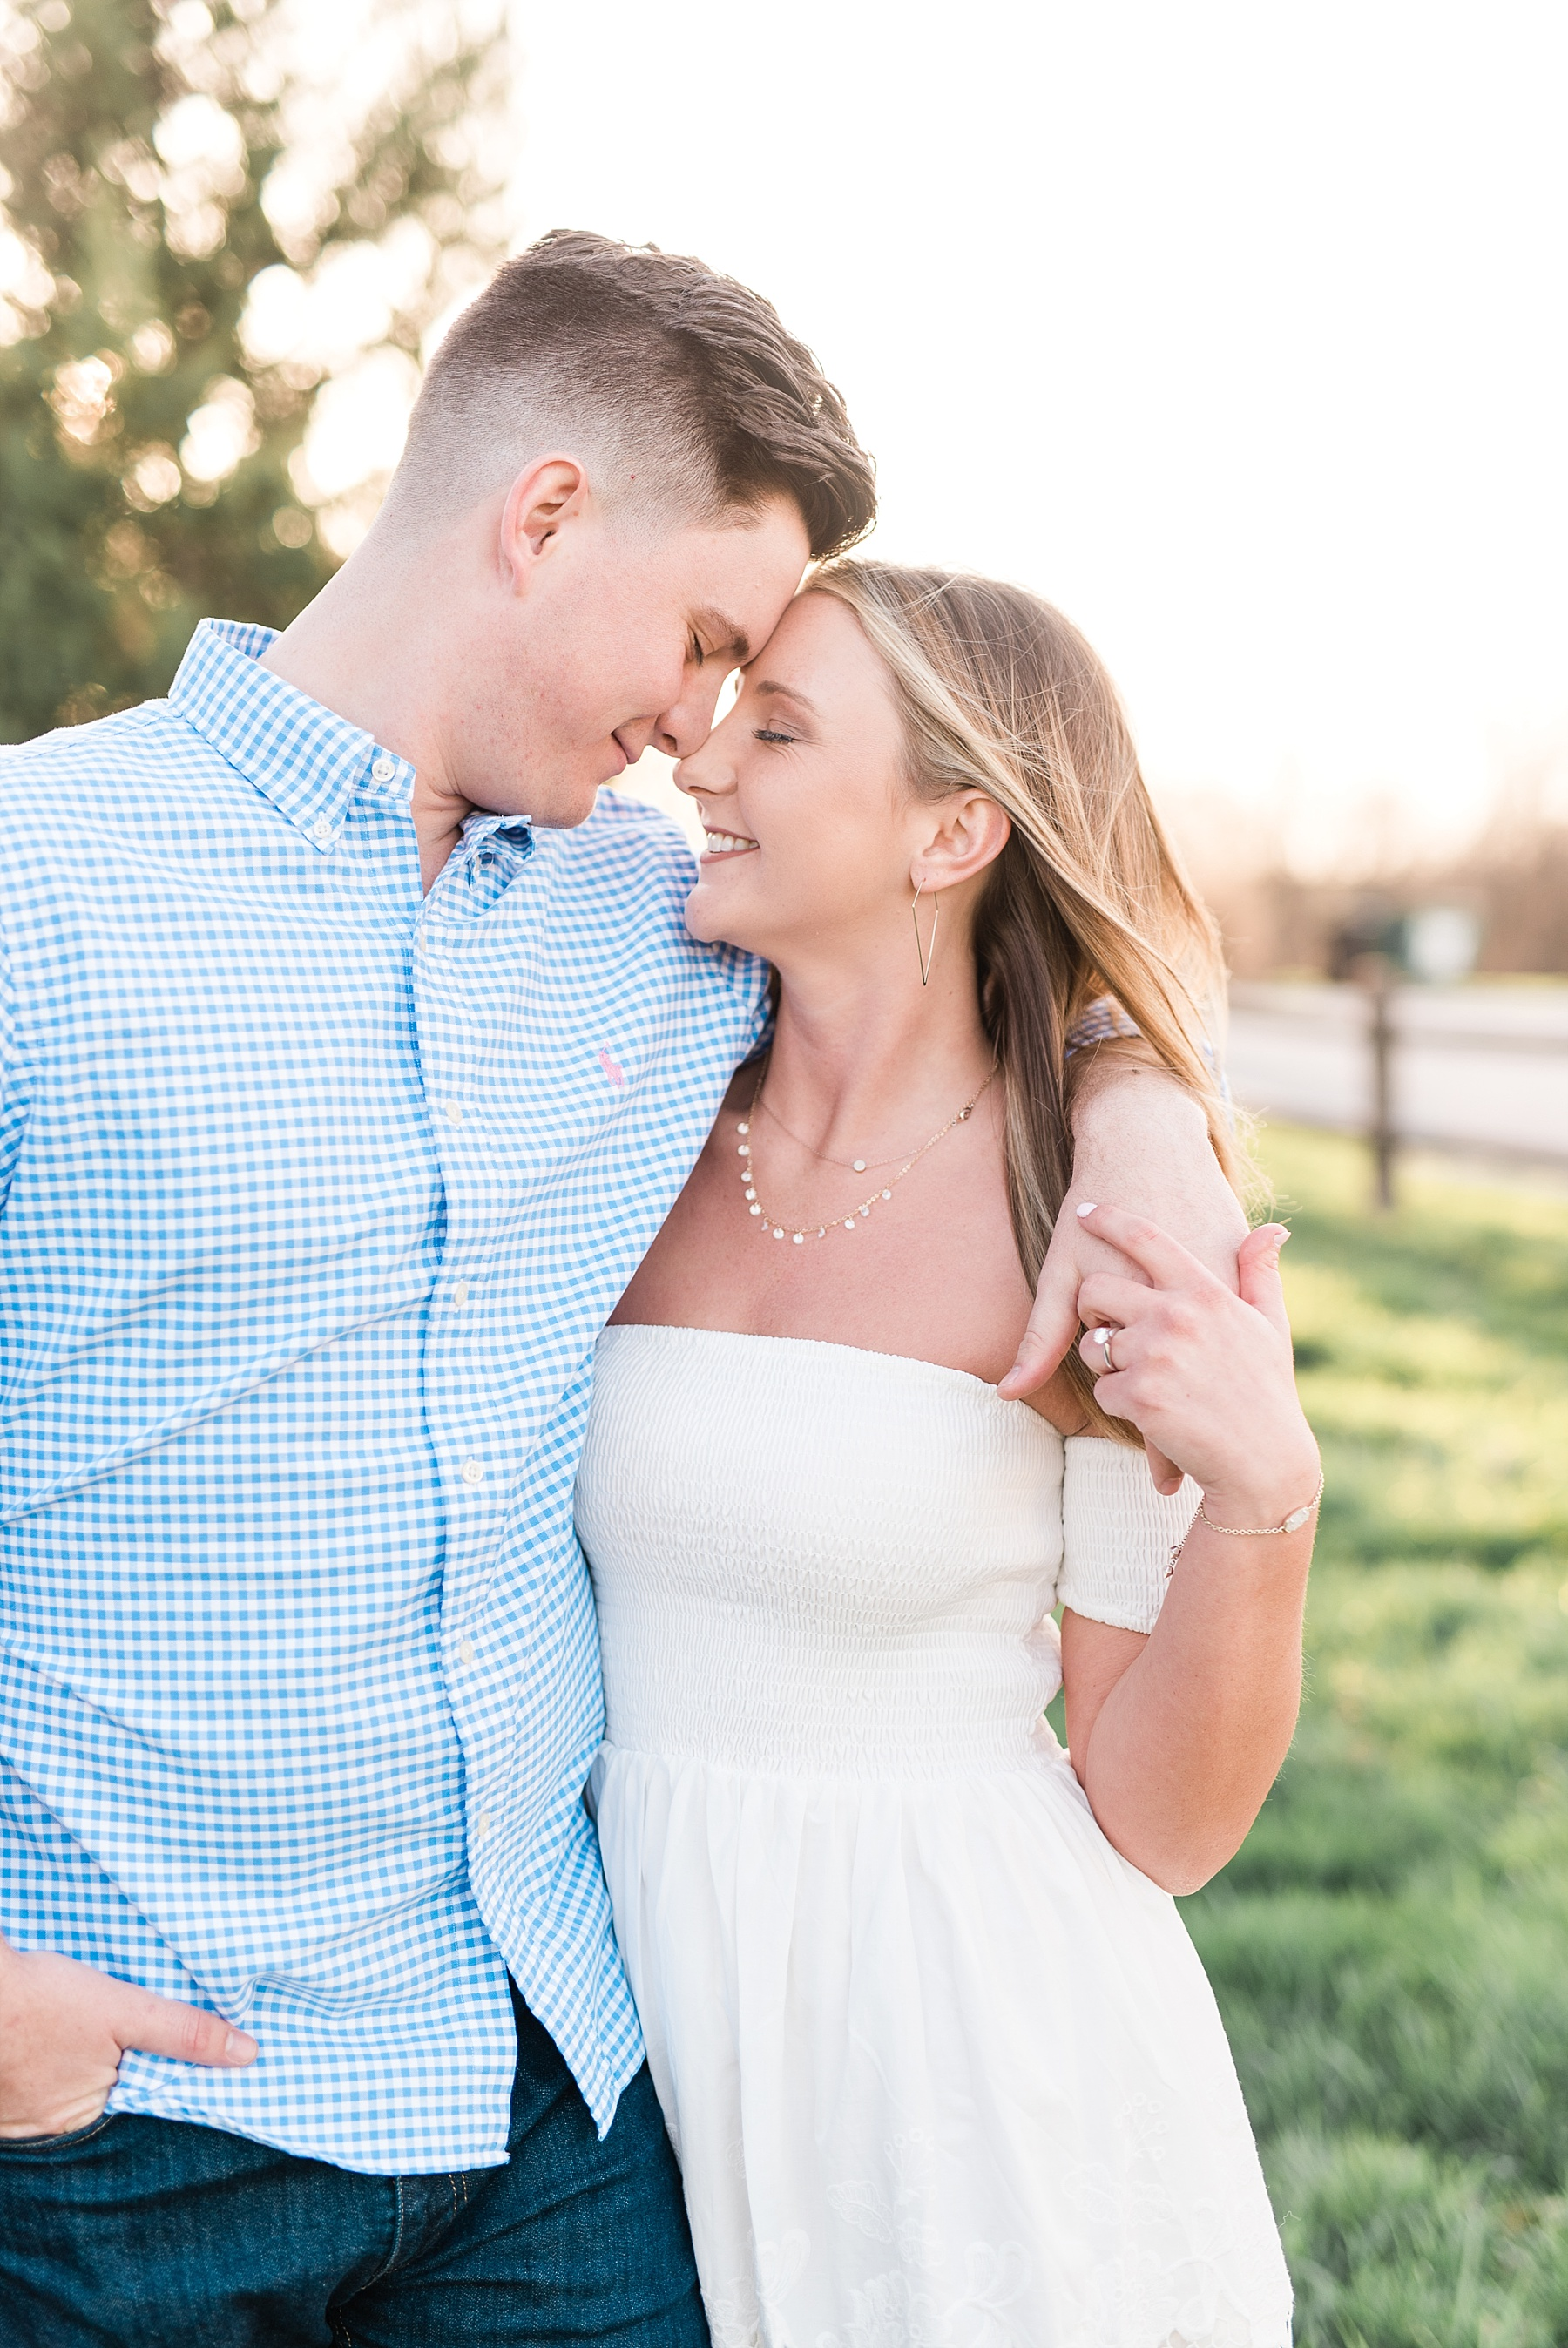 Spring Sunset Engagement Session with High School Sweethearts and Golden Retriever Puppy at Blue Bell Farm Fayette Missouri by Kelsi Kliethermes Photography_0017.jpg